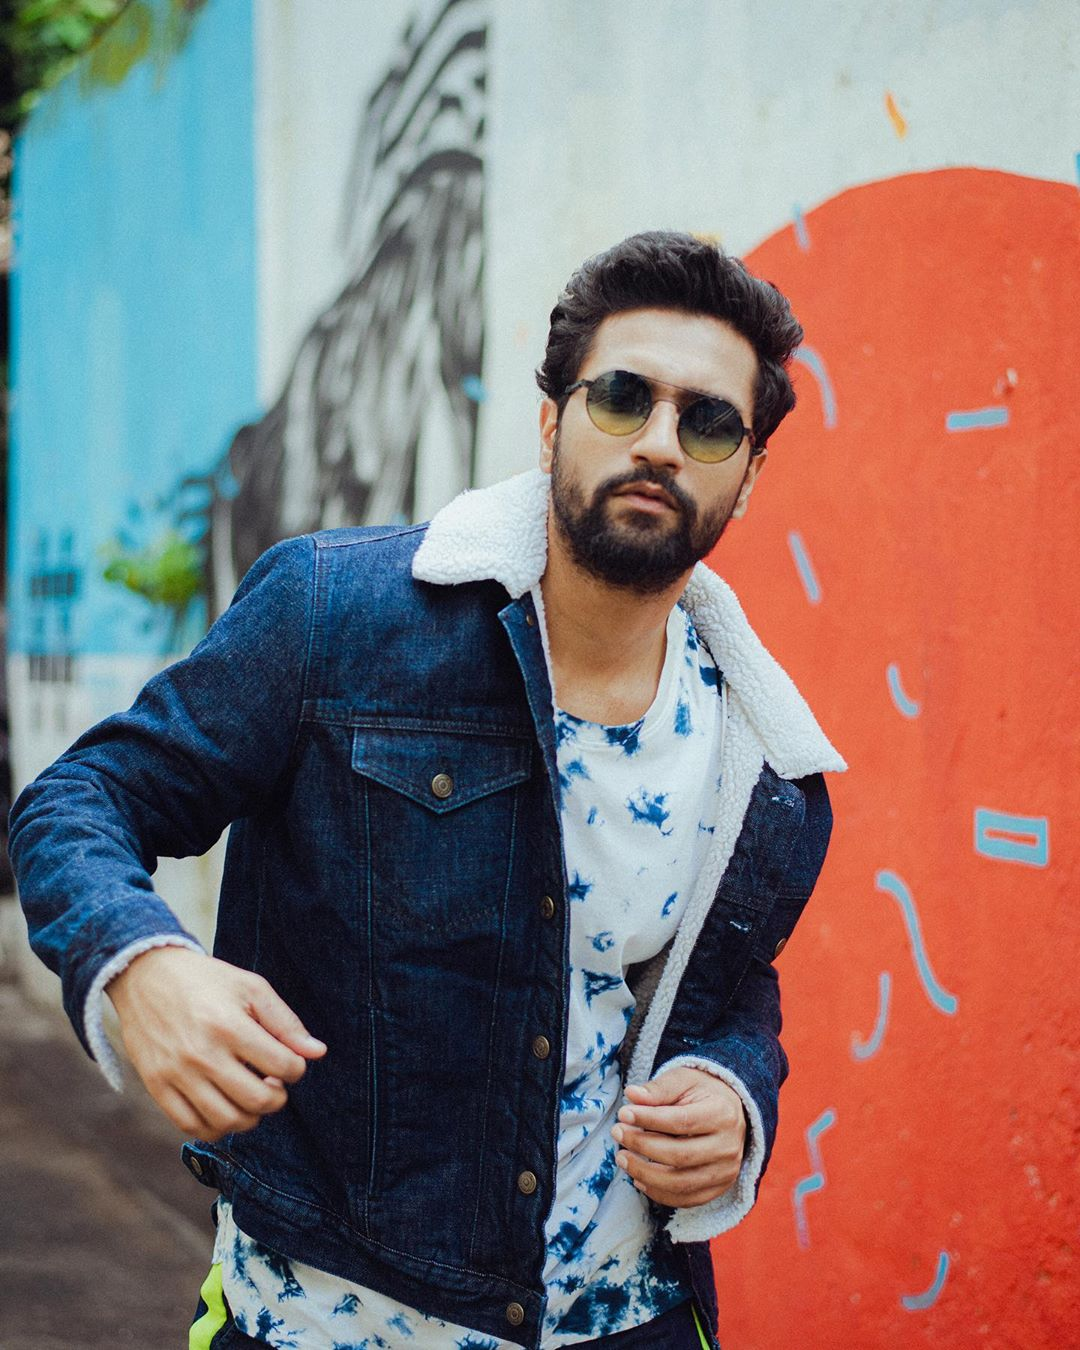 Vicky Kaushal says the right kind of criticism is important for actors